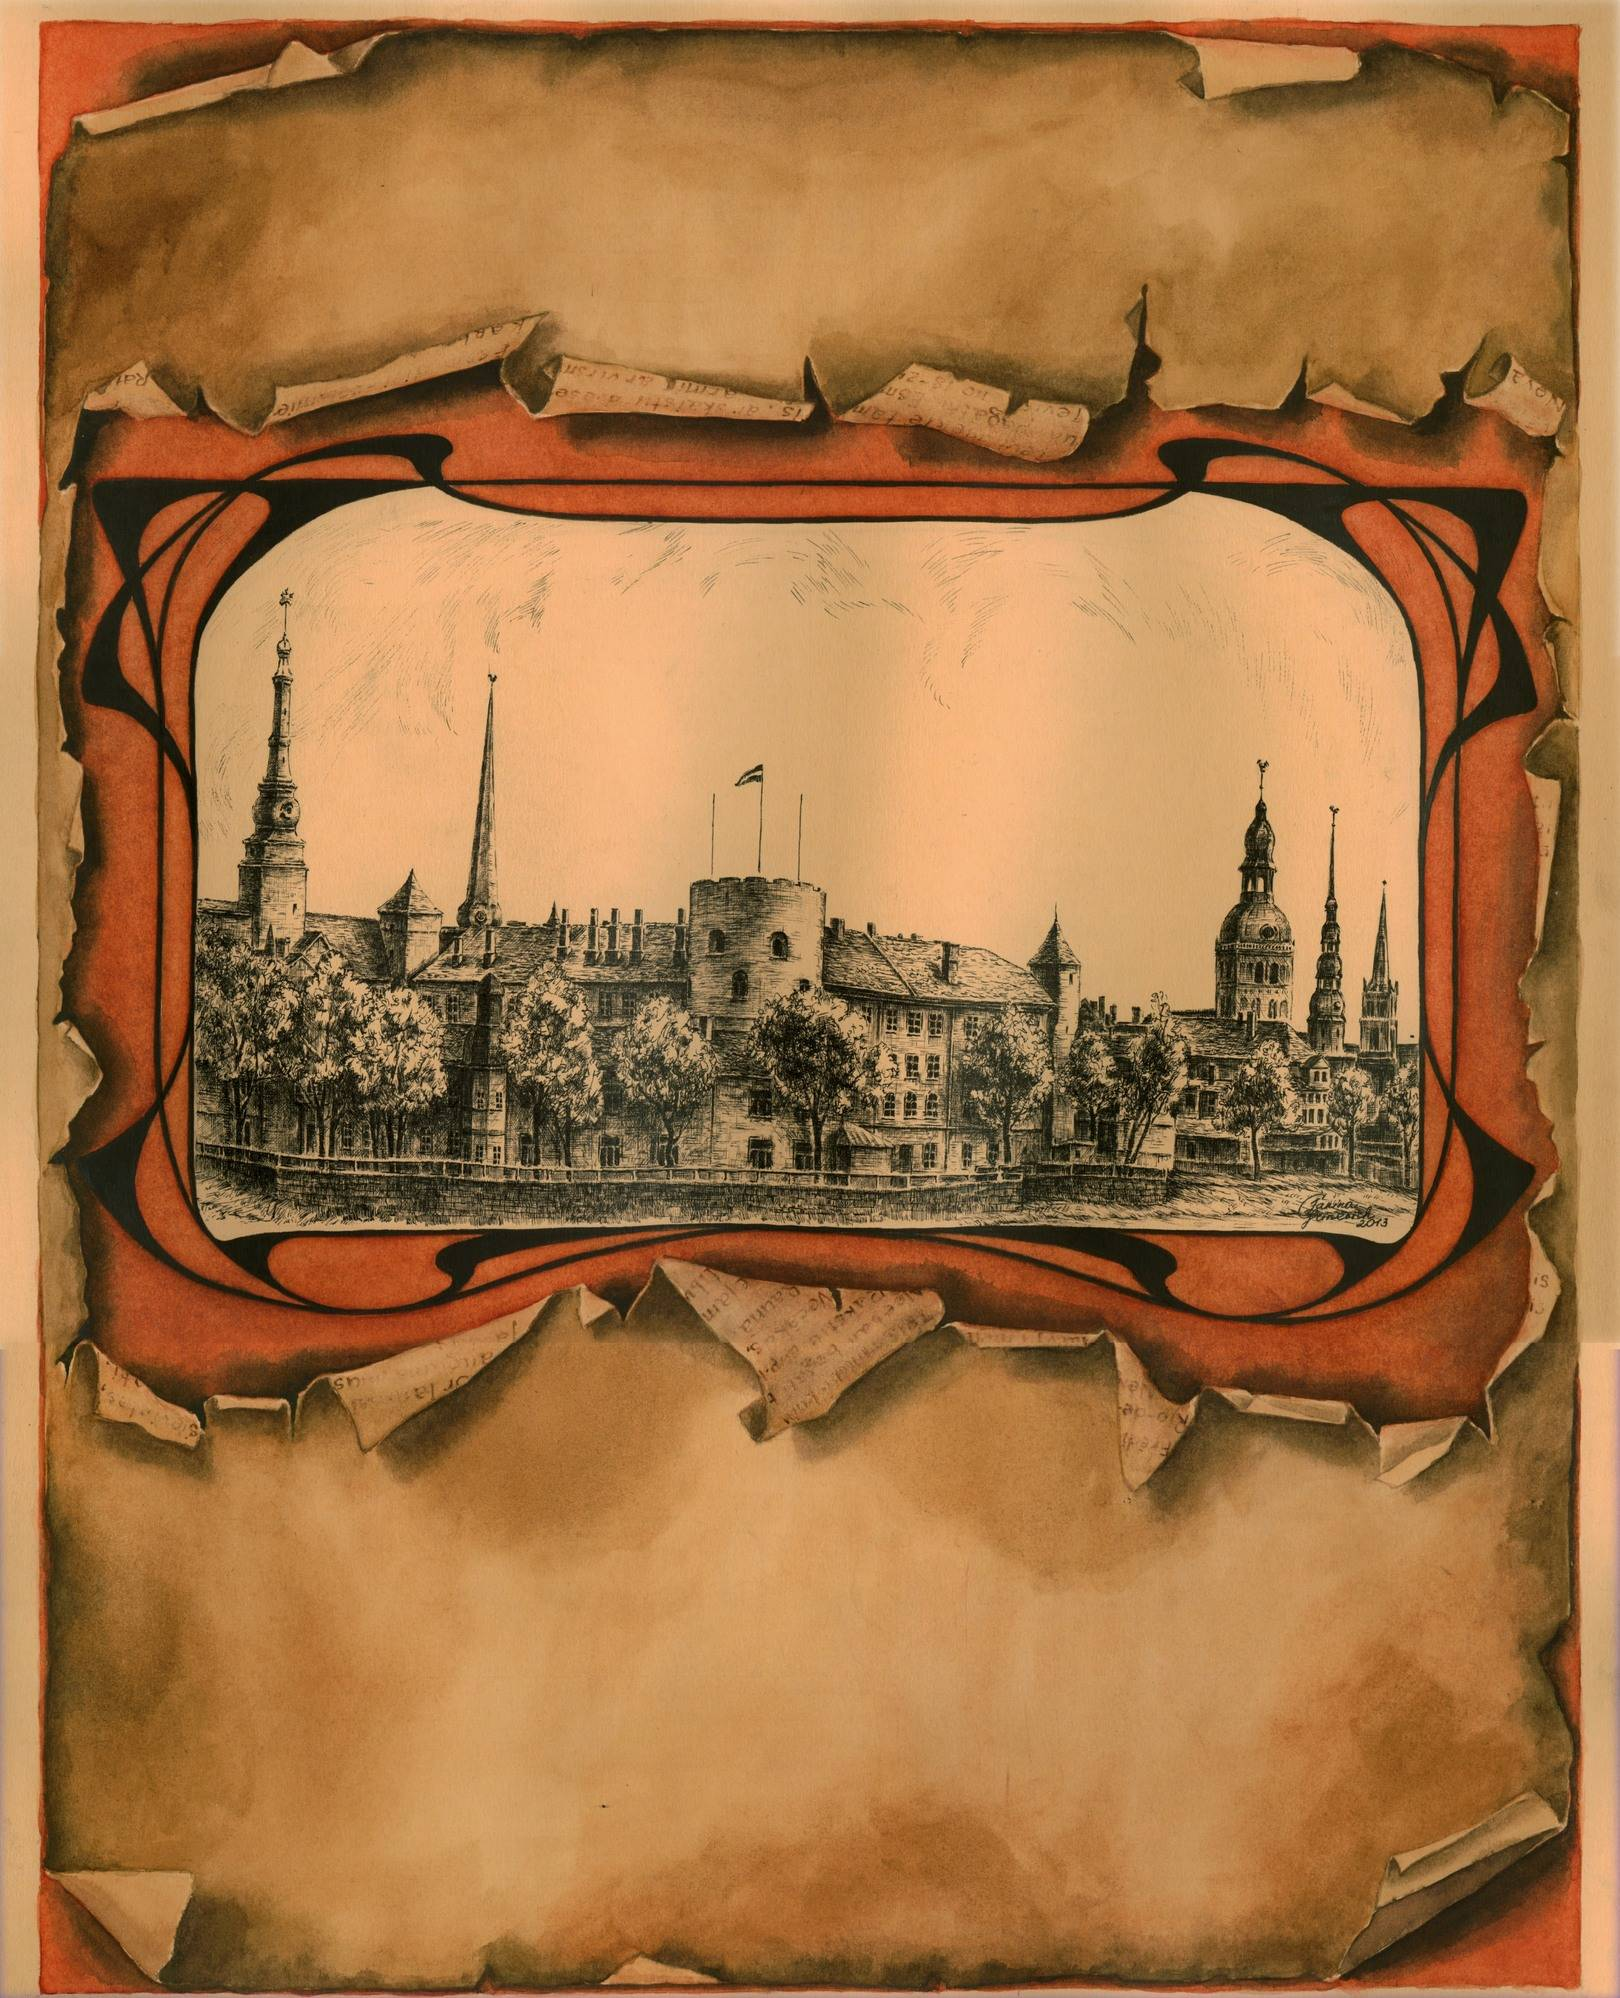 Old Riga in Centuries/ Старая Рига в столетиях